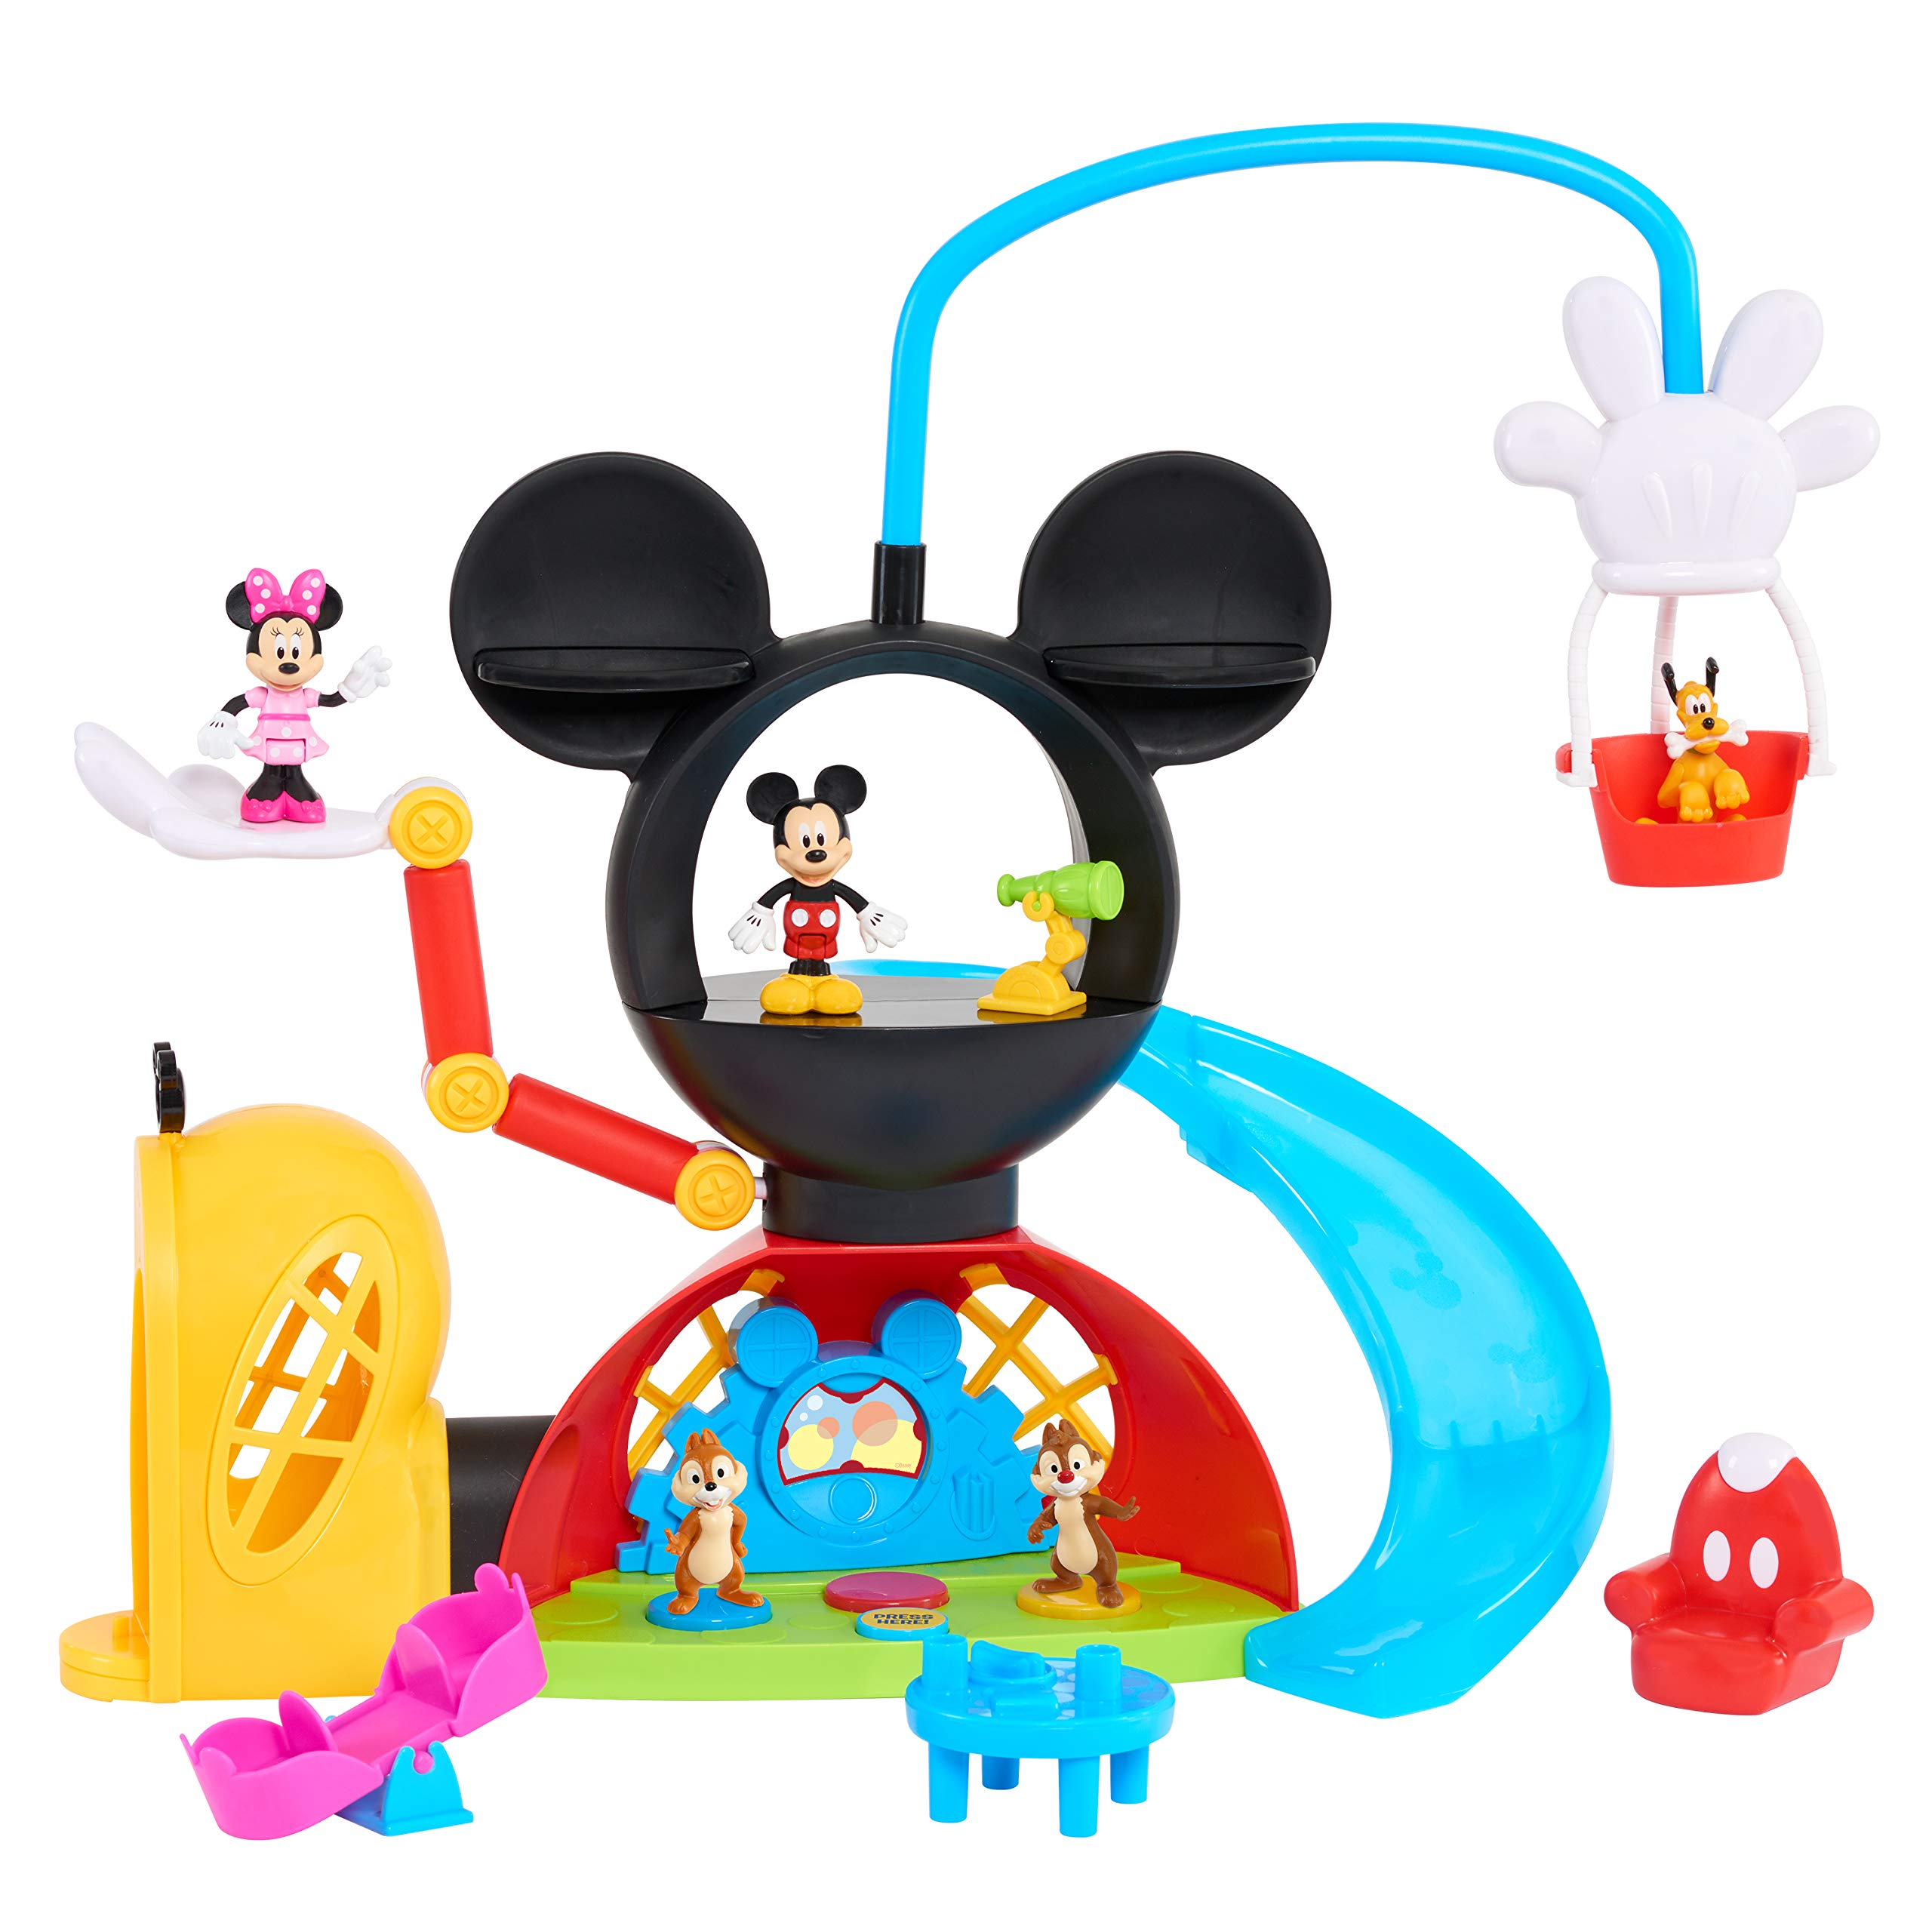 Mickey Mouse Clubhouse Adventures Playset - Amazon Exclusive